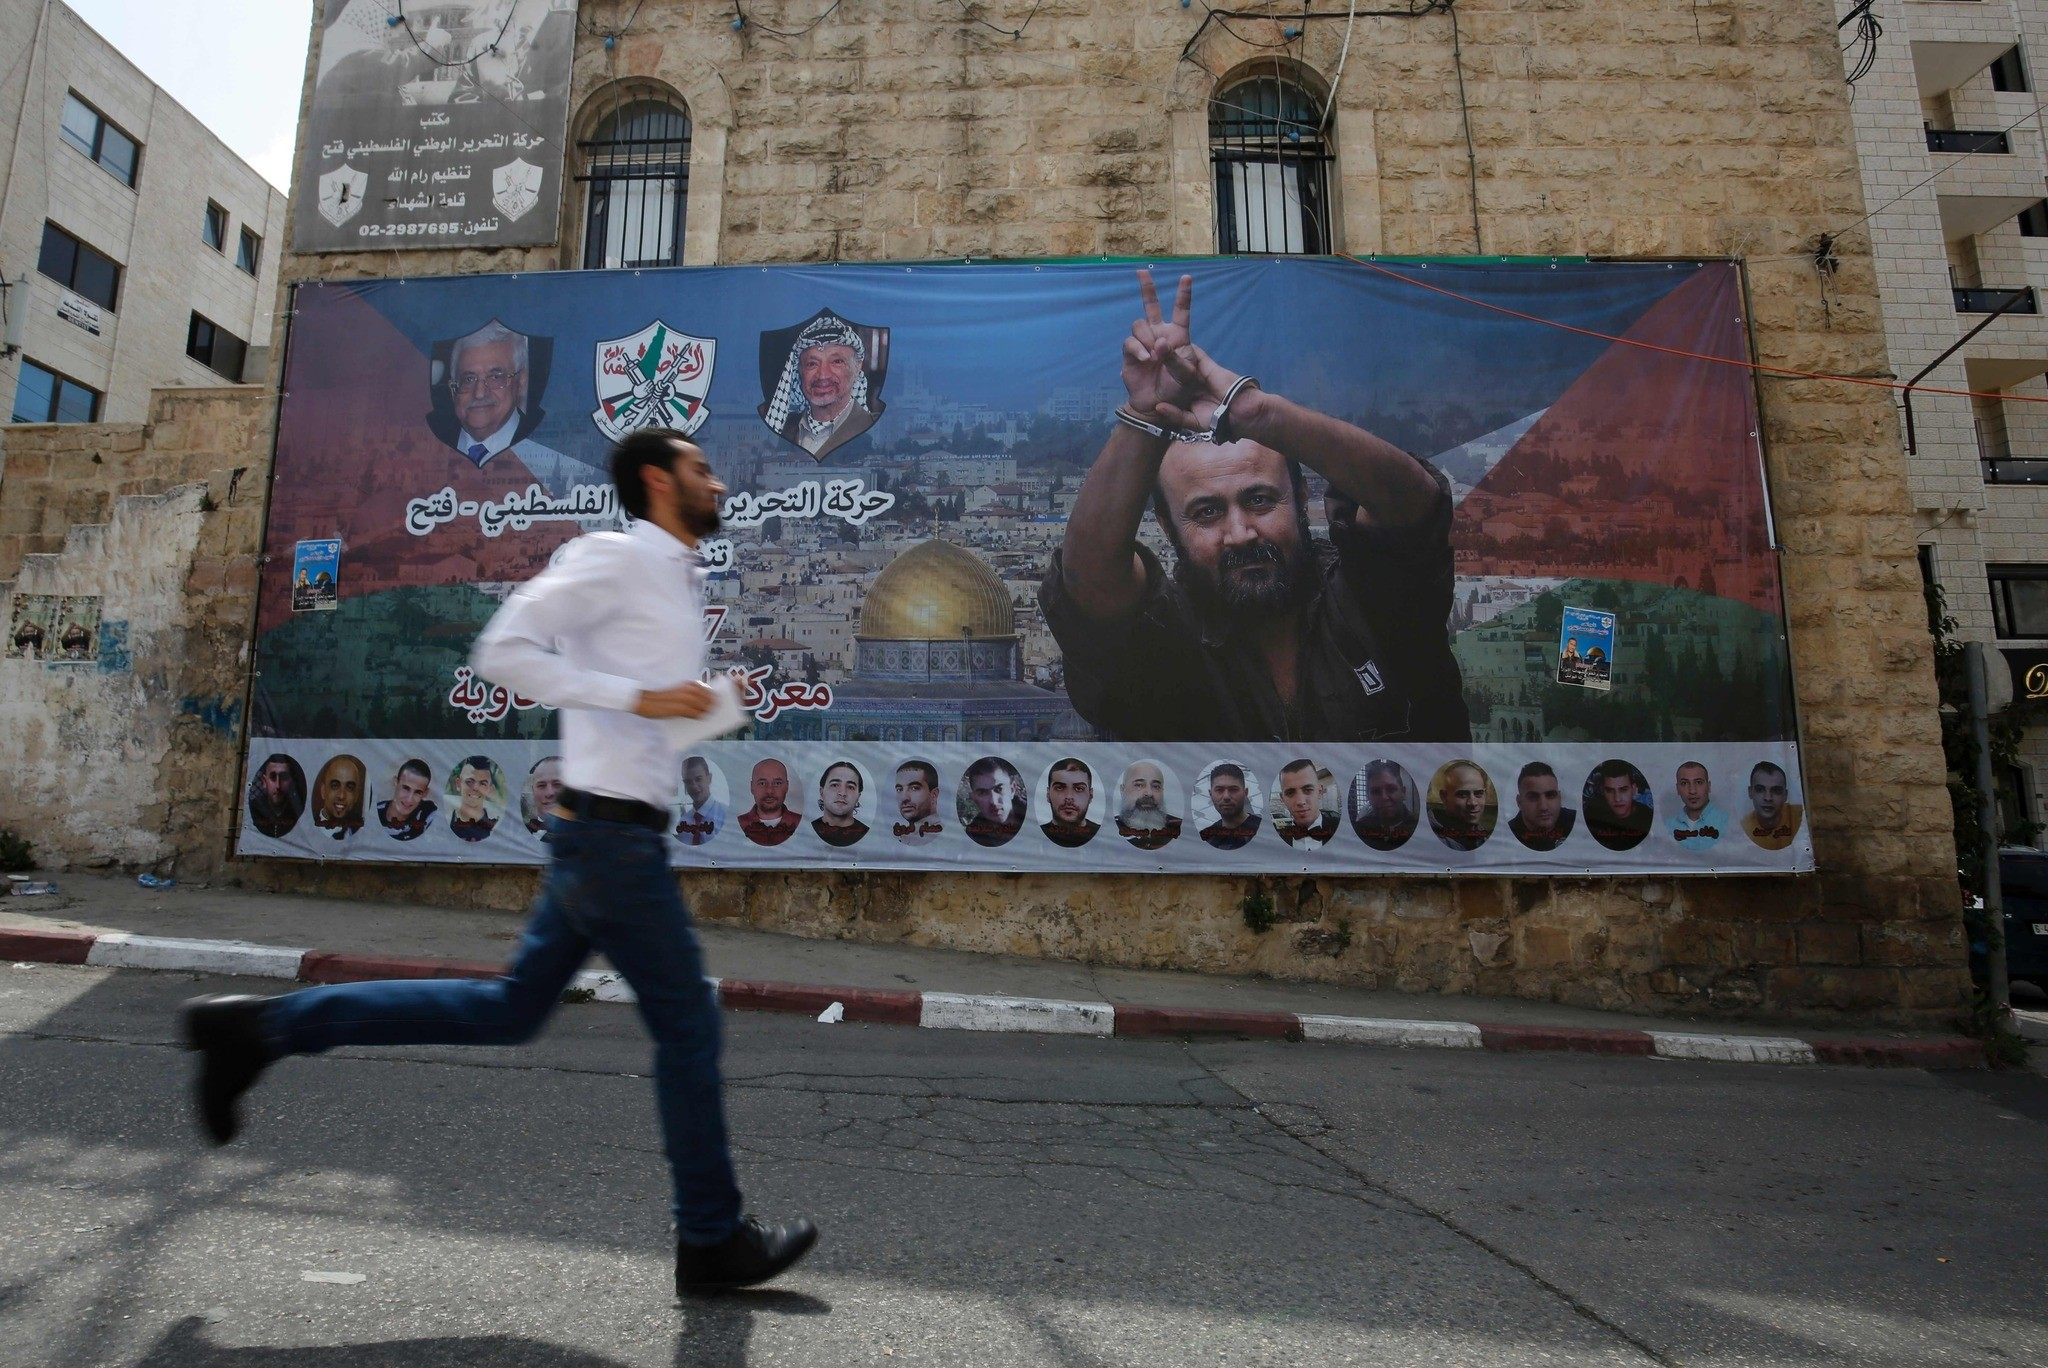 A Palestinian runs past a poster bearing a portrait of Palestinian leader Marwan Barghouti in the West Bank city of Ramallah on May 3, 2017. (AFP PHOTO)